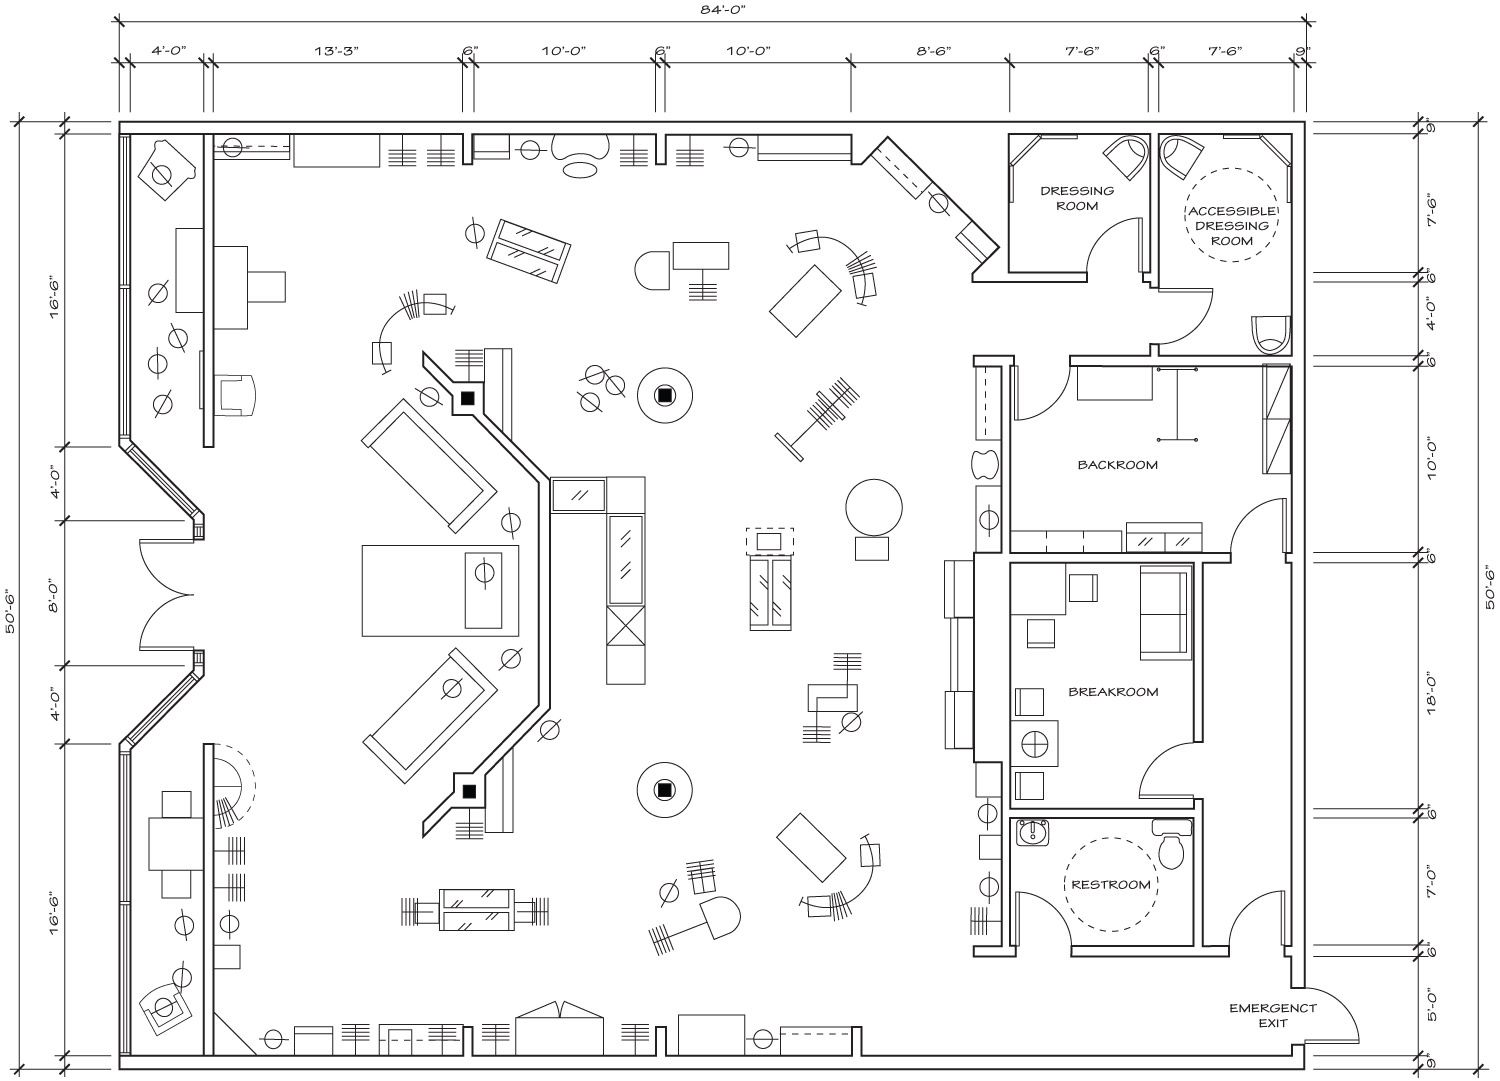 retail_floor_plan Google Search Visual Merchandising